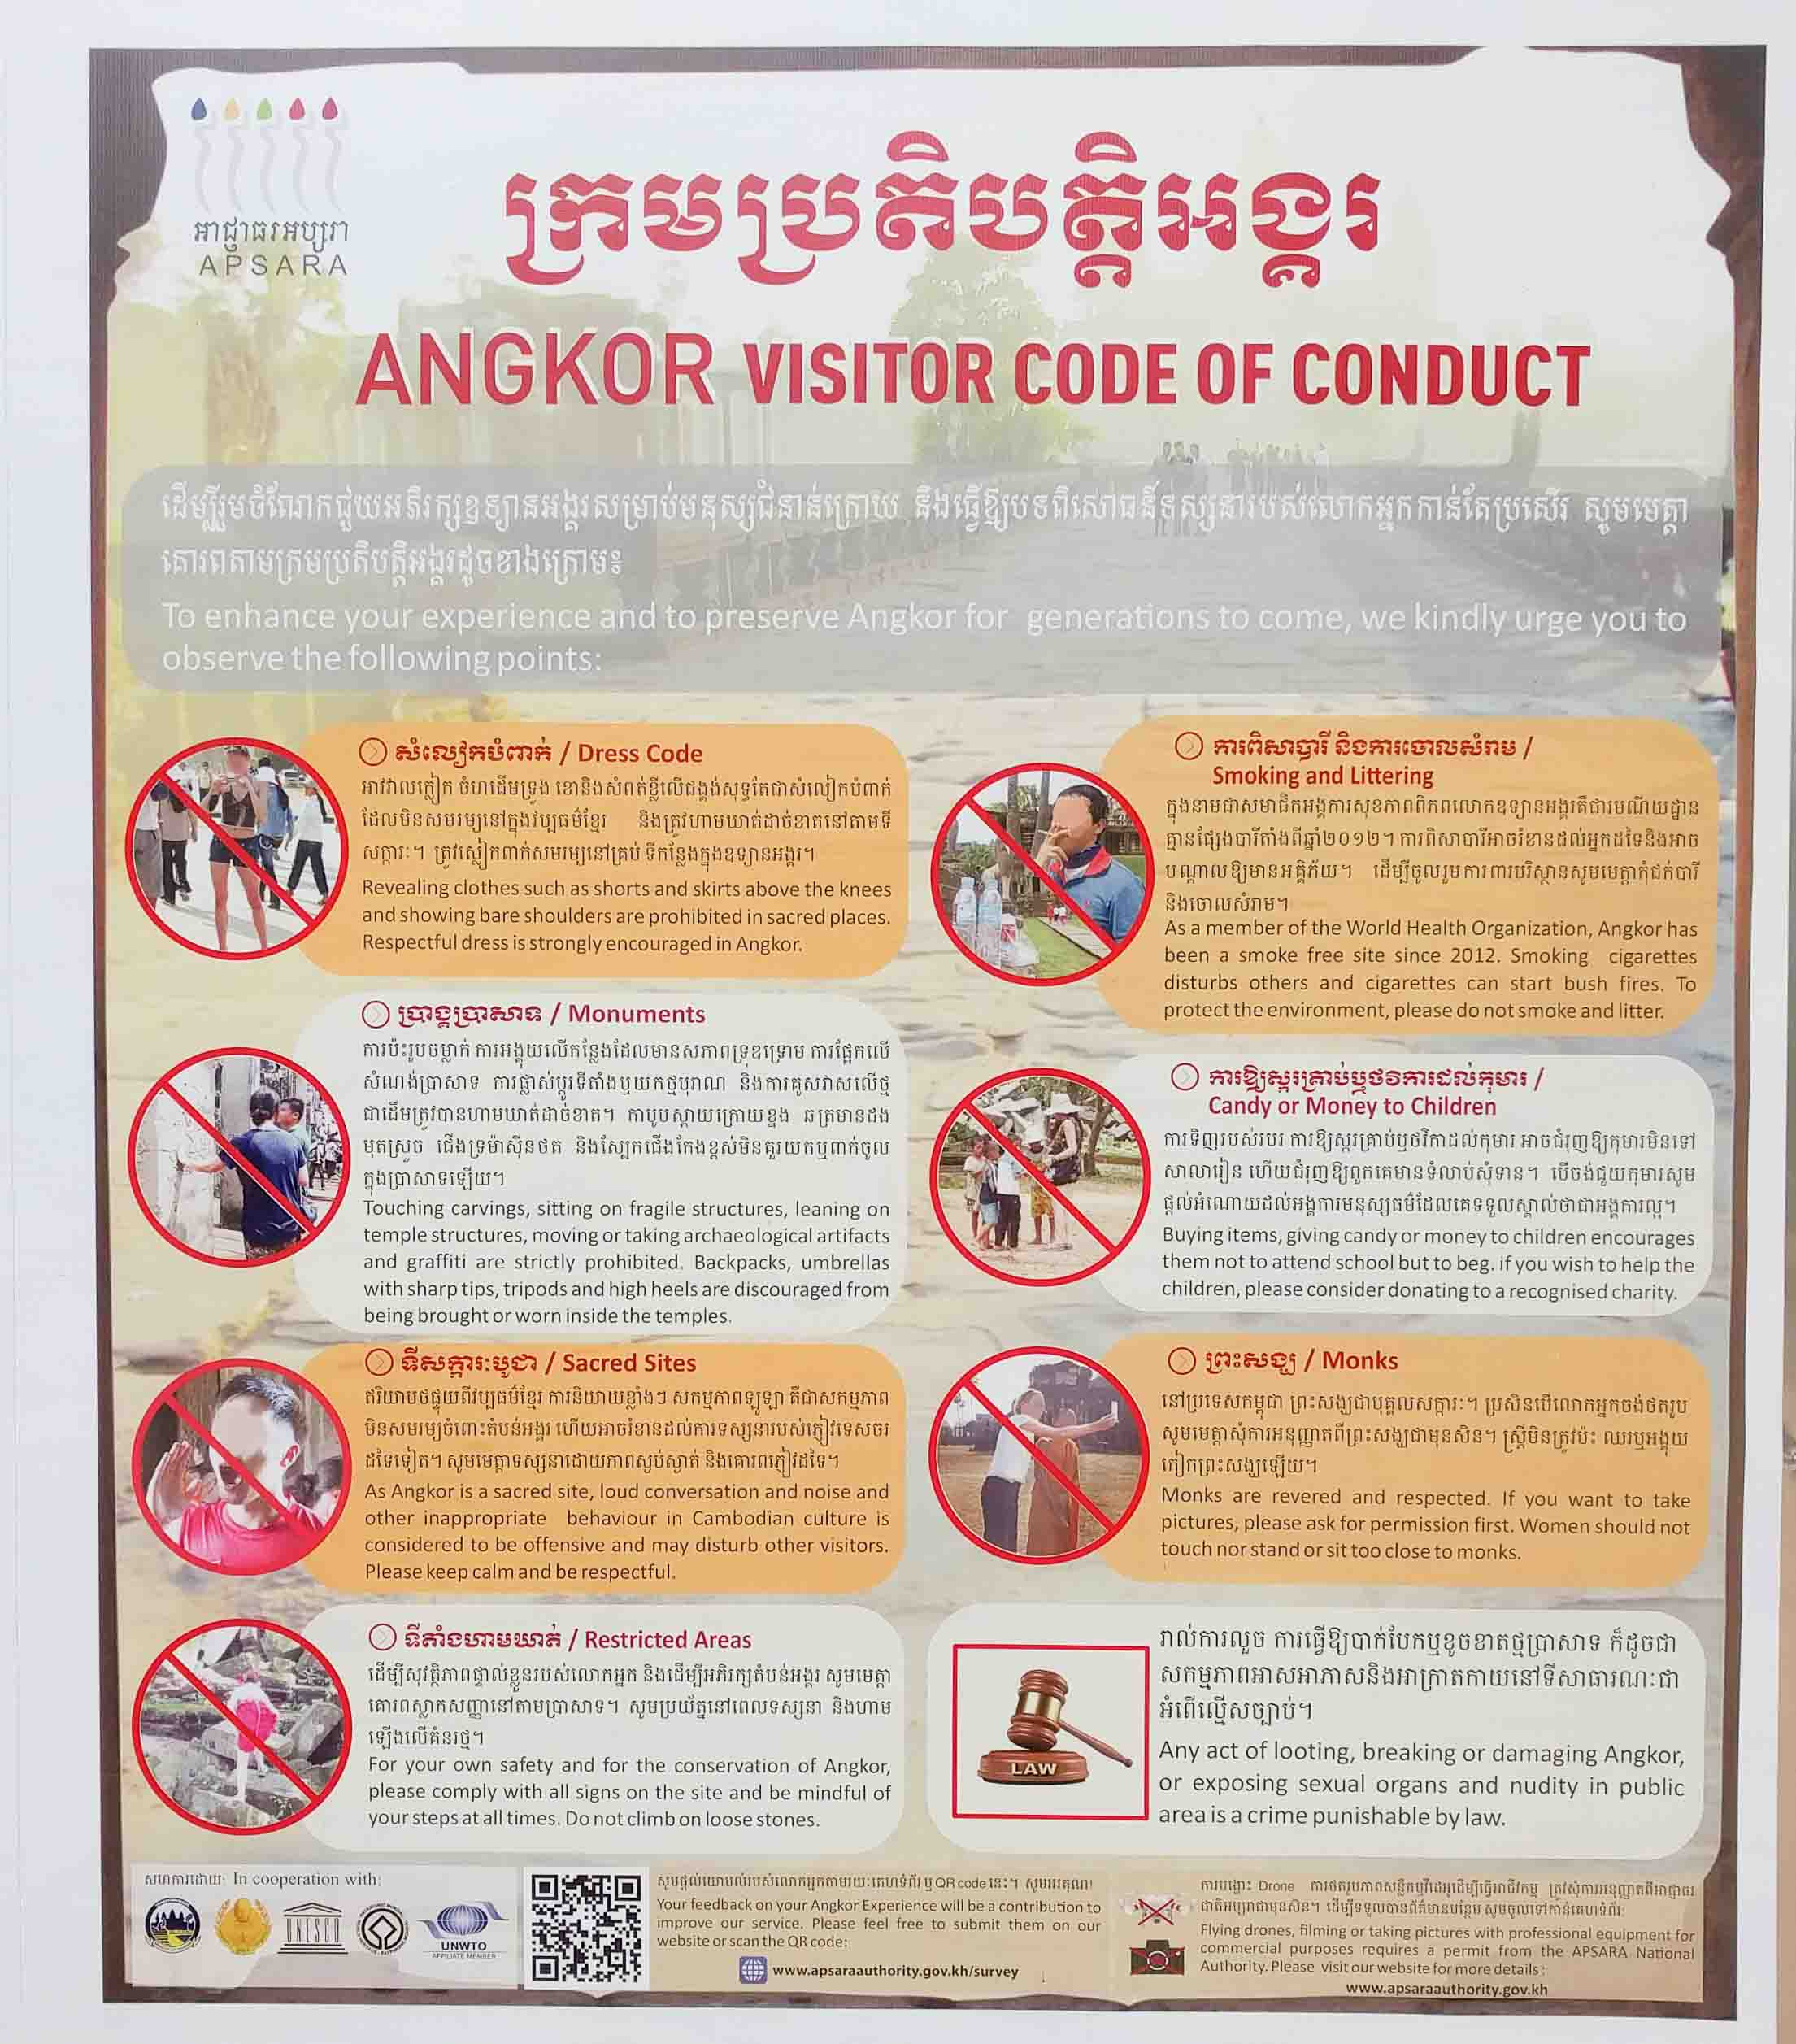 Rules for visiting Angkor, Cambodia